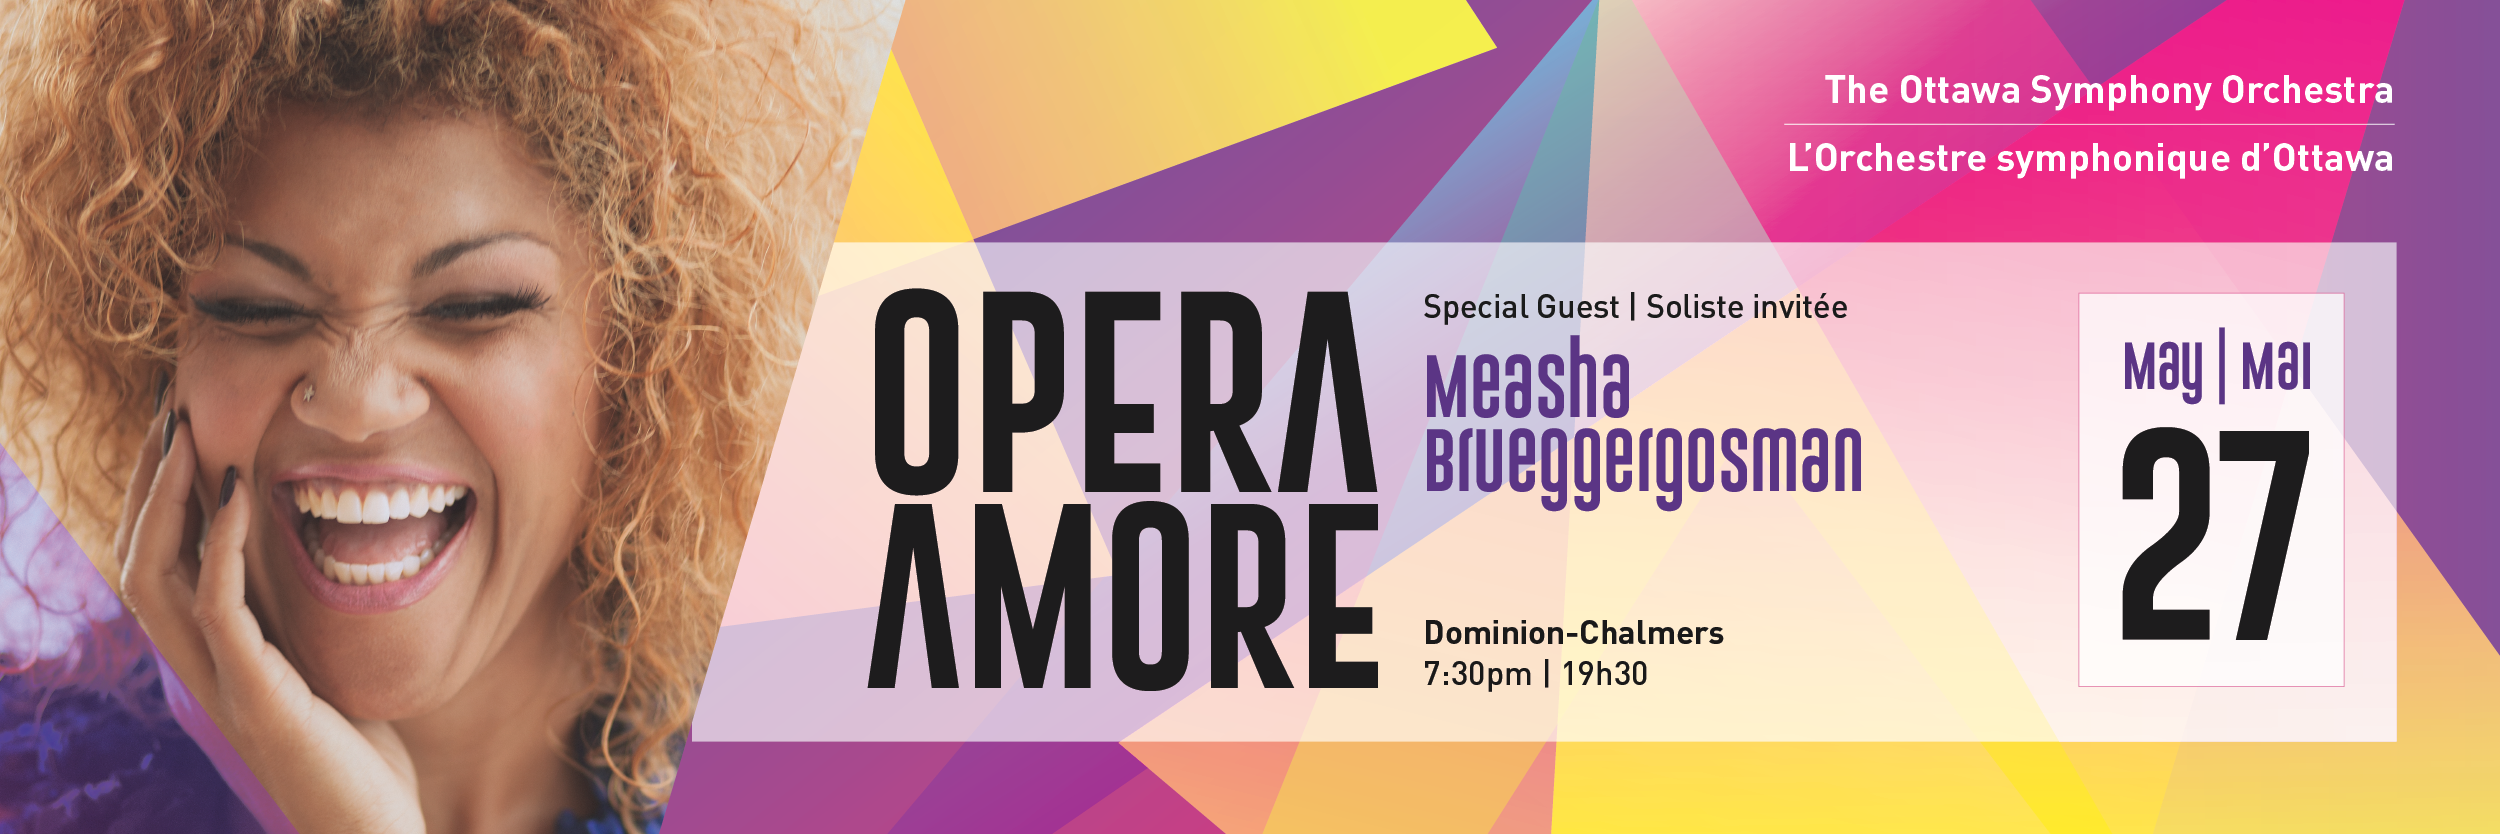 OSO-WEB-Banner-Amore-A.png